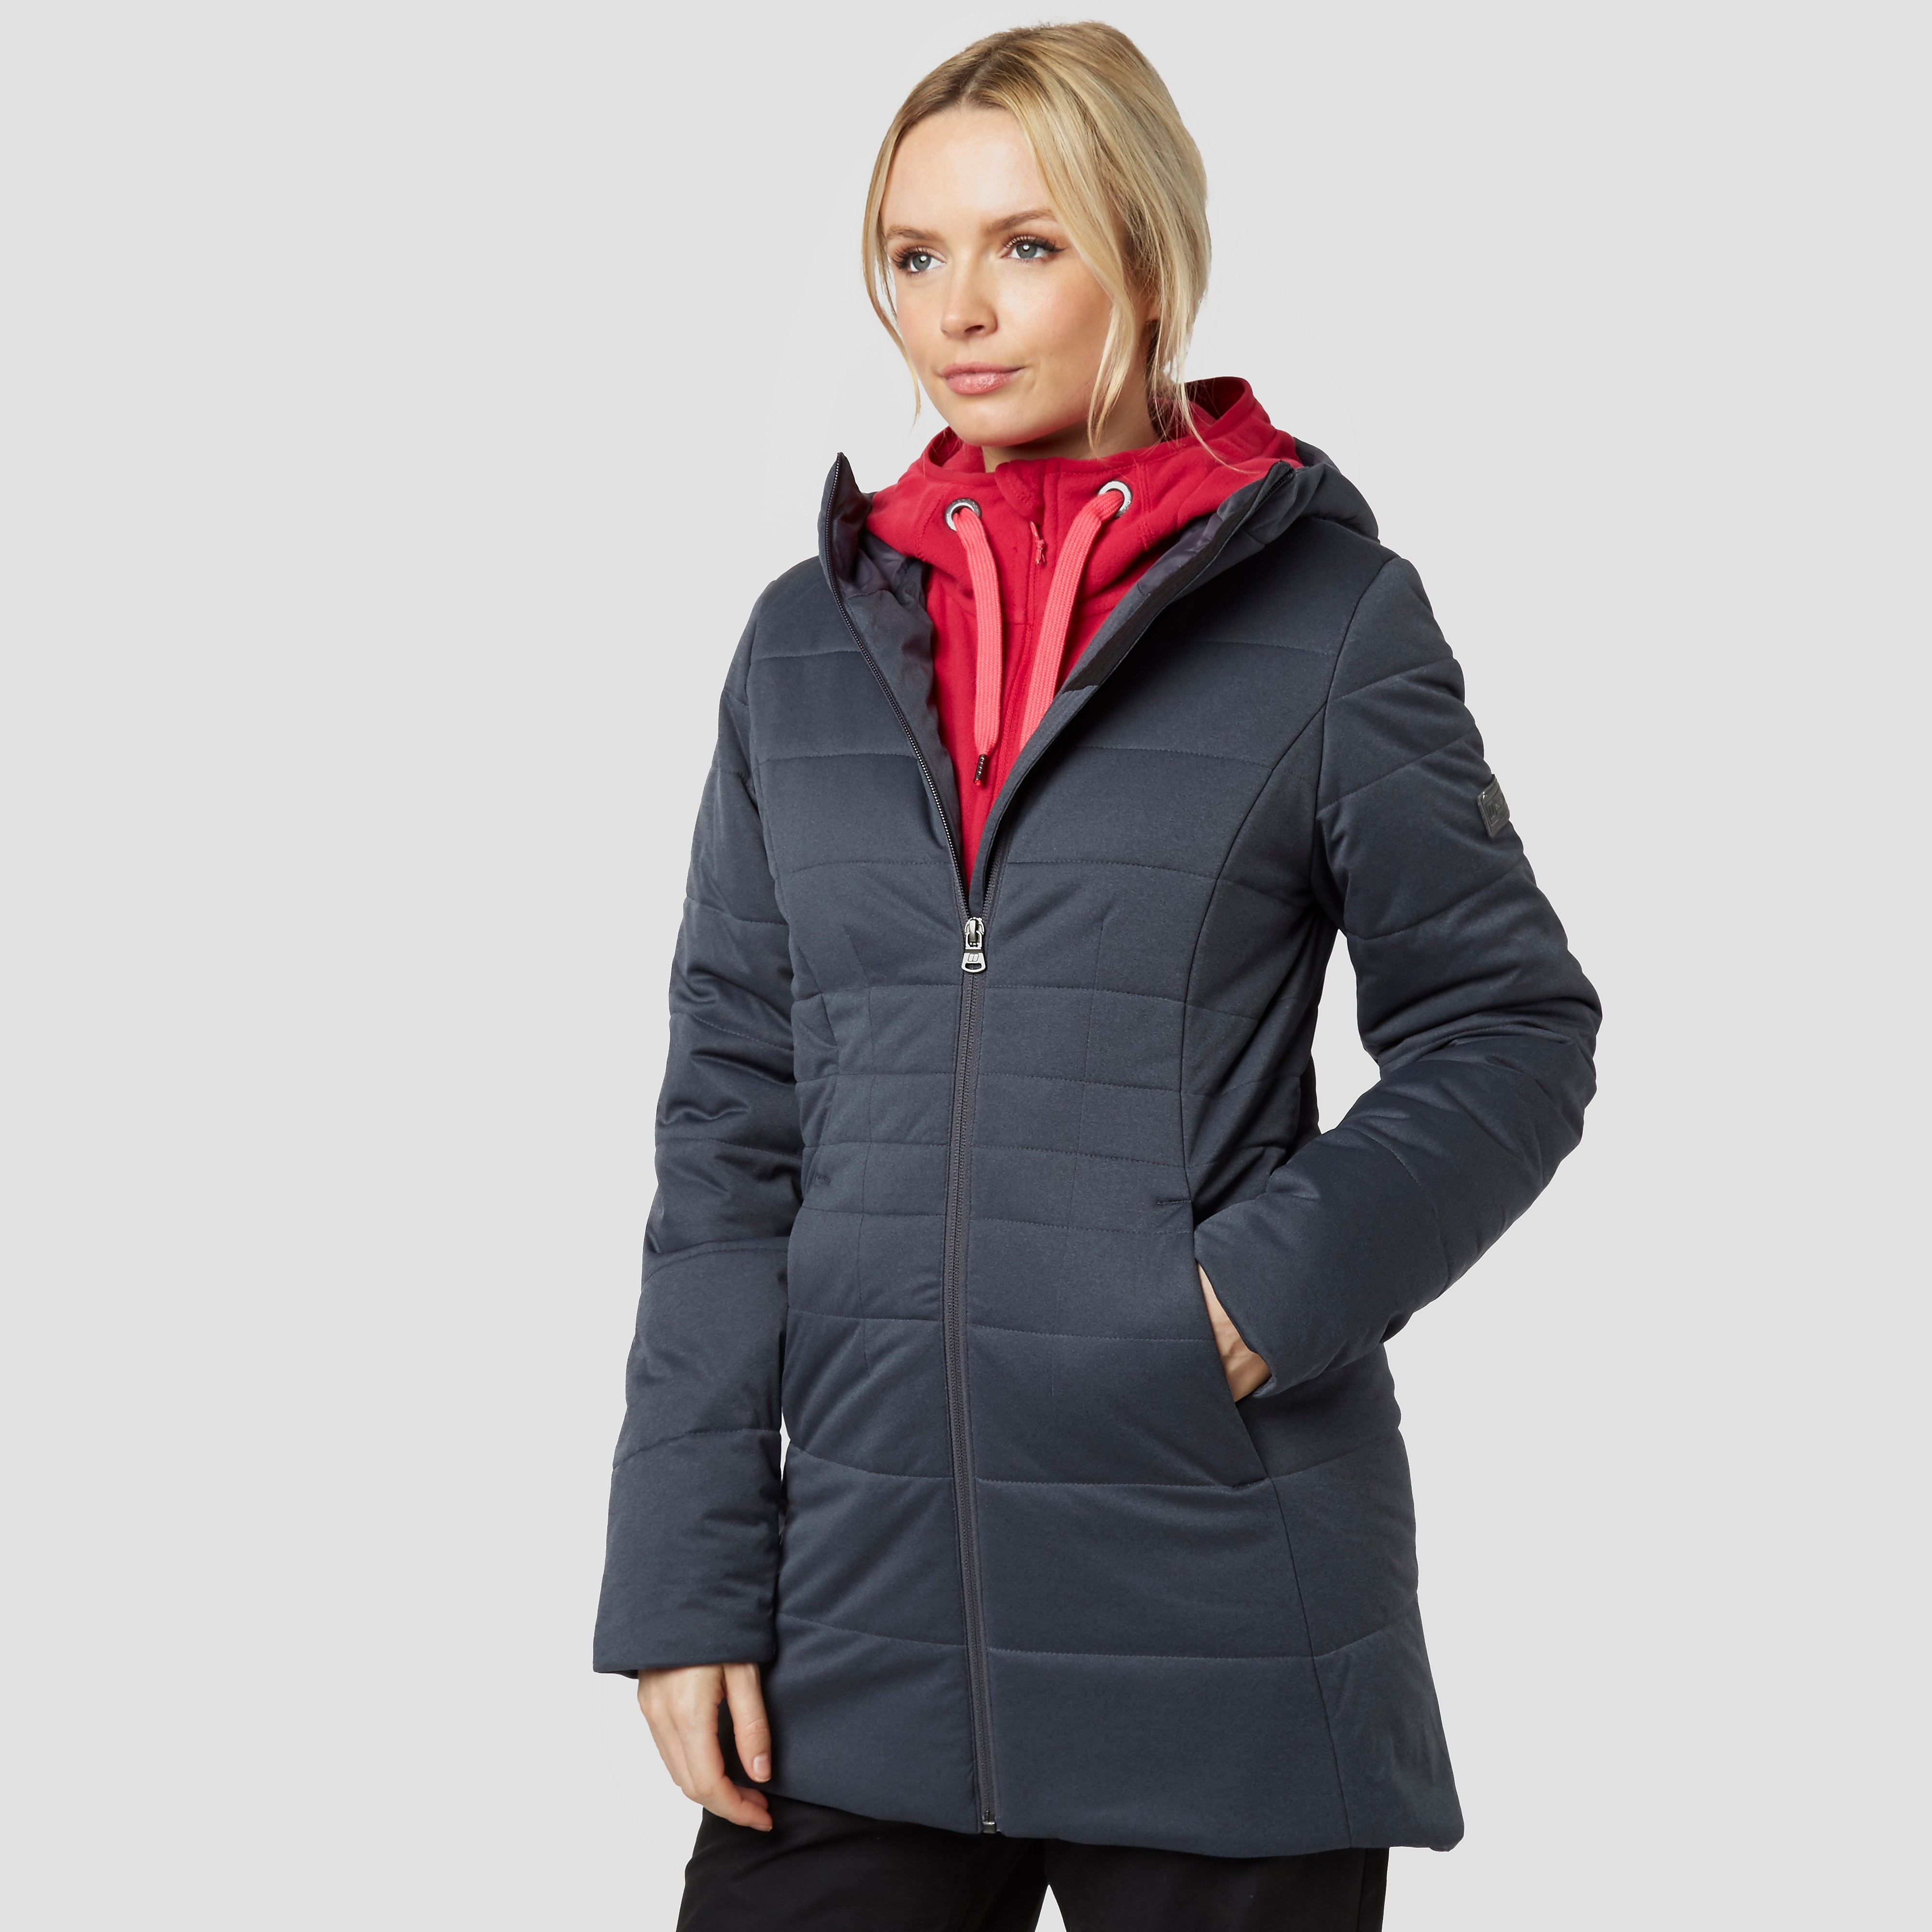 BERGHAUS Hatfield Women's Insulated Jacket